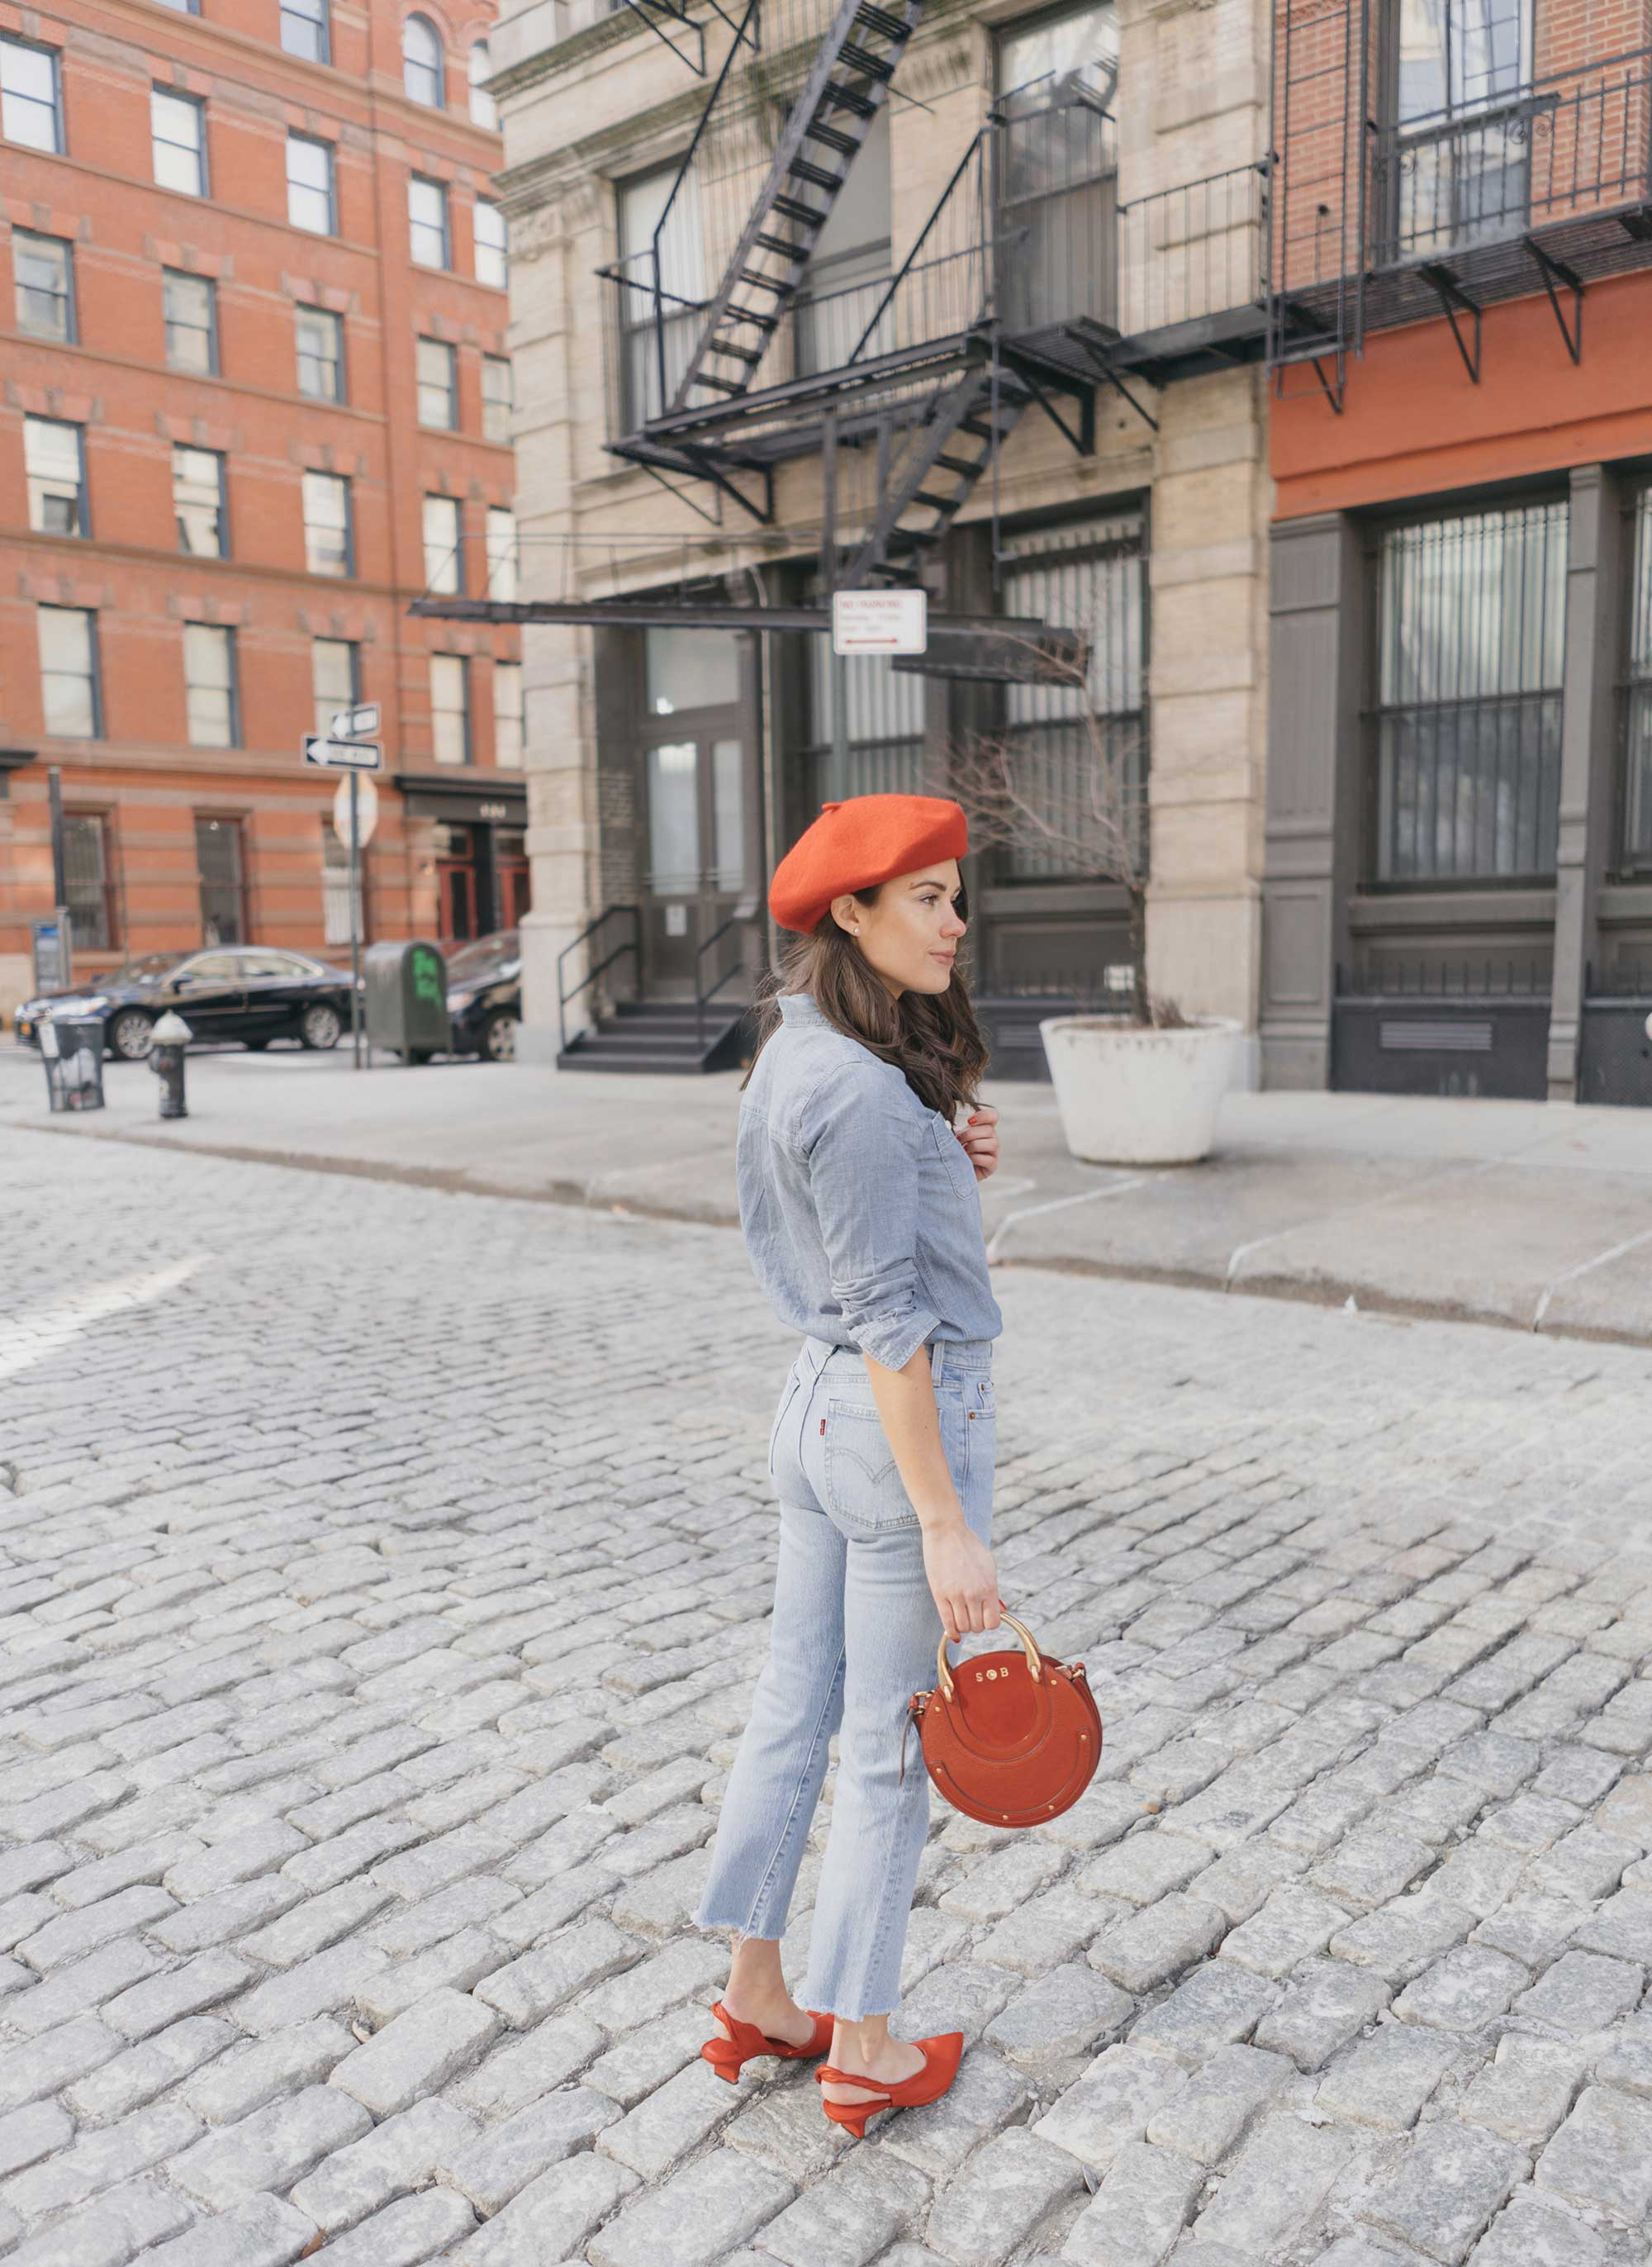 Madewell-Chambray-Boyfriend-Shirt--Levi's-Wedgie-High-Rise-Straight-Jeans-Chloe-Pixie-Leather-Crossbody-Bag-Sigerson-Morrison-Red-Slingback-Pump-6.jpg